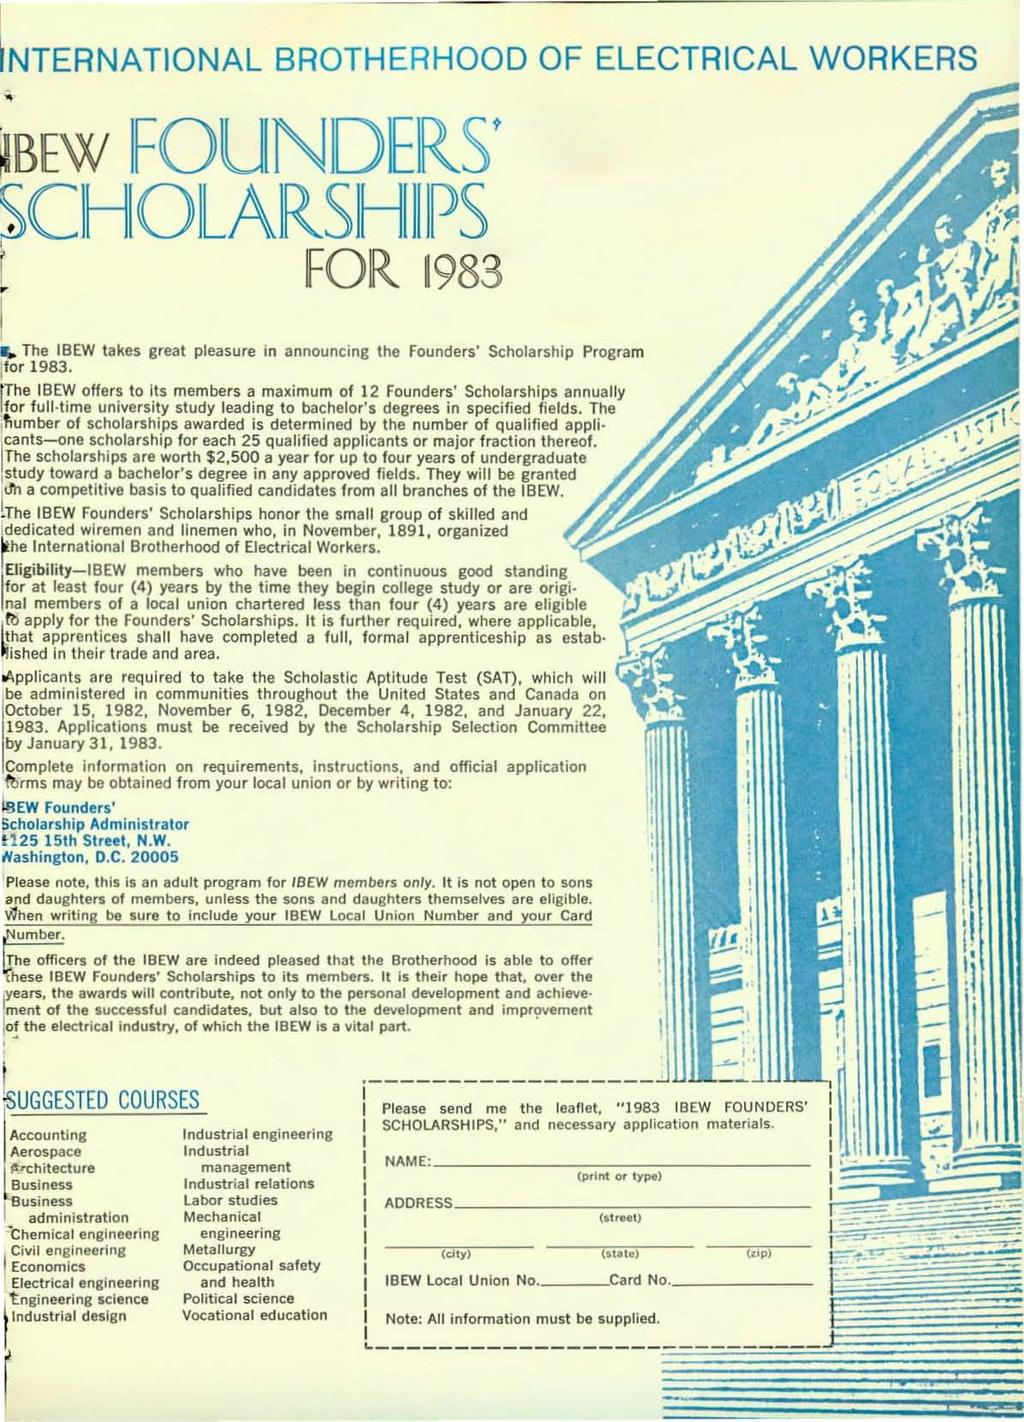 NTERNATIONAL BROTHERHOOD OF ELECTRICAL WORKERS BEW IFOUINIDIERSt CIHIOLAIRSIHIIIIPS FOR 1983 f. The tbew takes great pleasure in announcing the Founders' Scholarship Program 'or 1983.